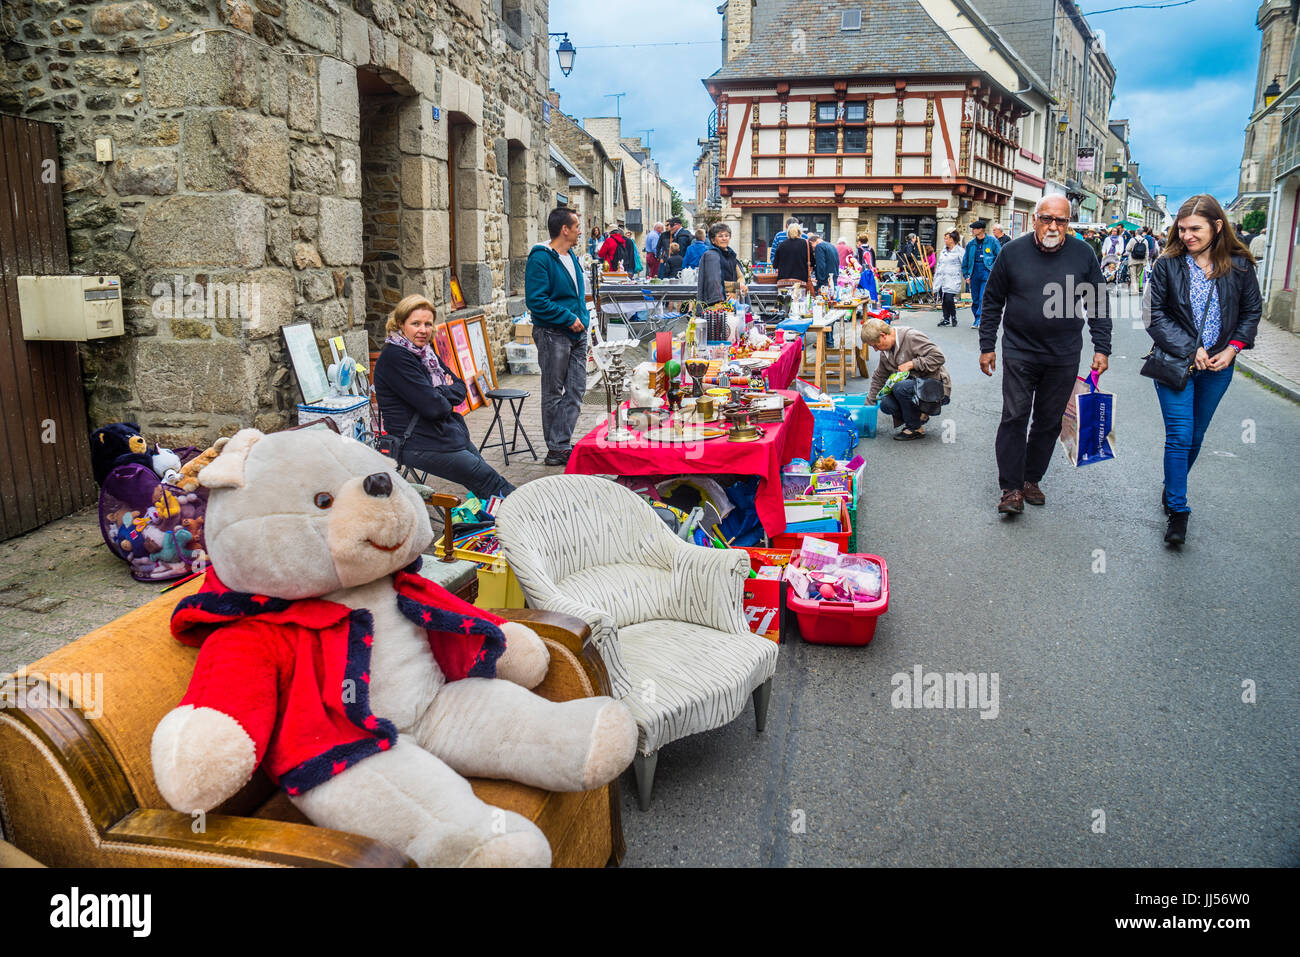 France, Brittany, Antiques Street Fair in the breton country town of Lanvollon - Stock Image